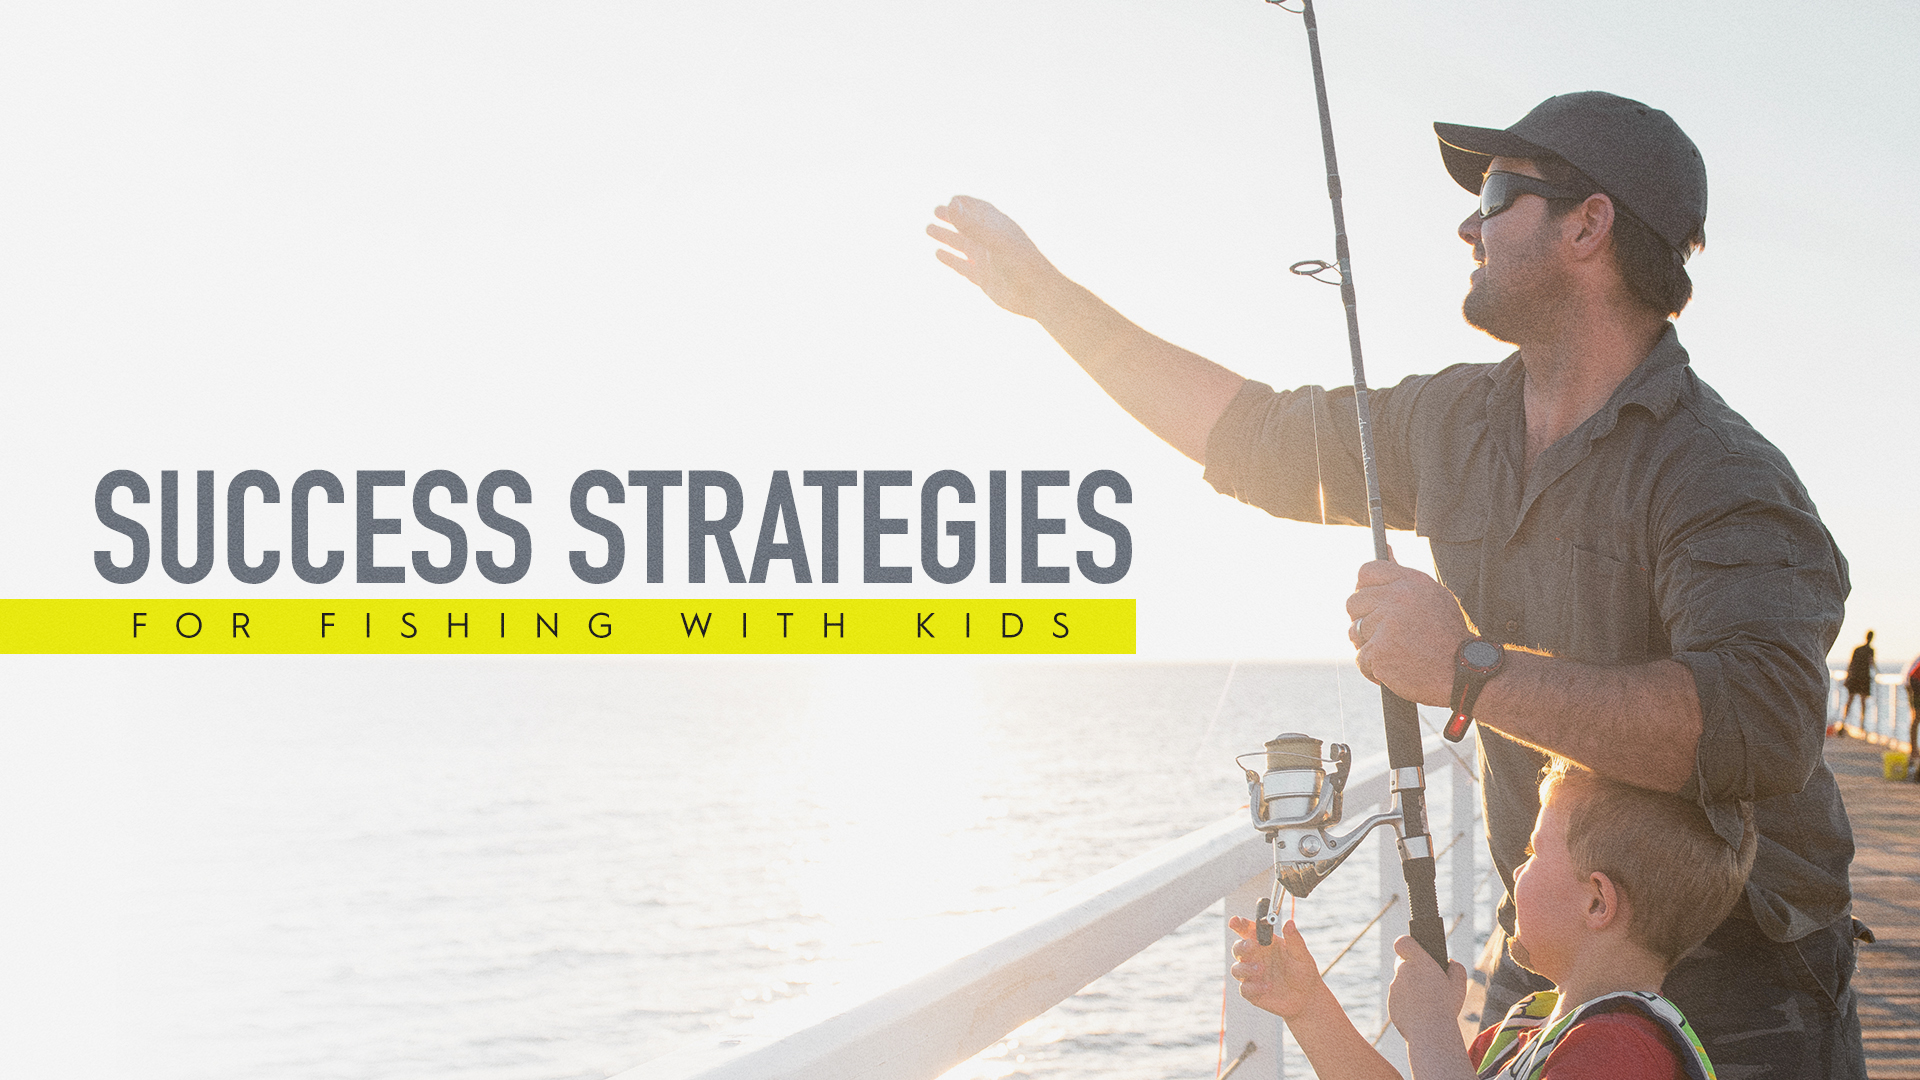 SUCCESS STRATEGIES FOR FISHING KIDS